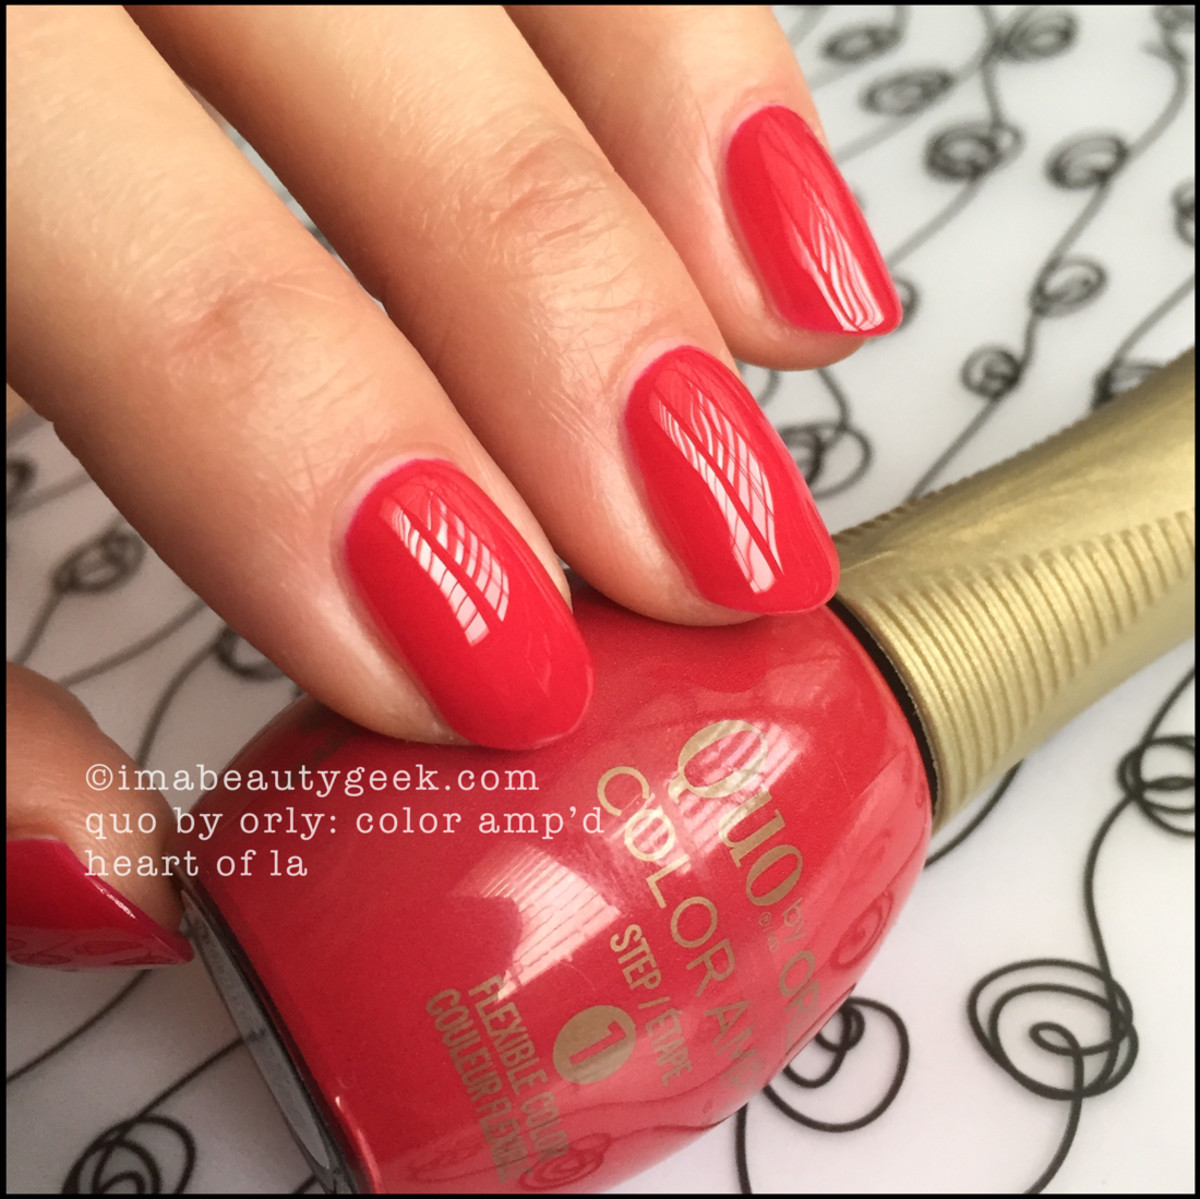 Quo Color Ampd Heart of La_Quo by Orly Epix Swatches